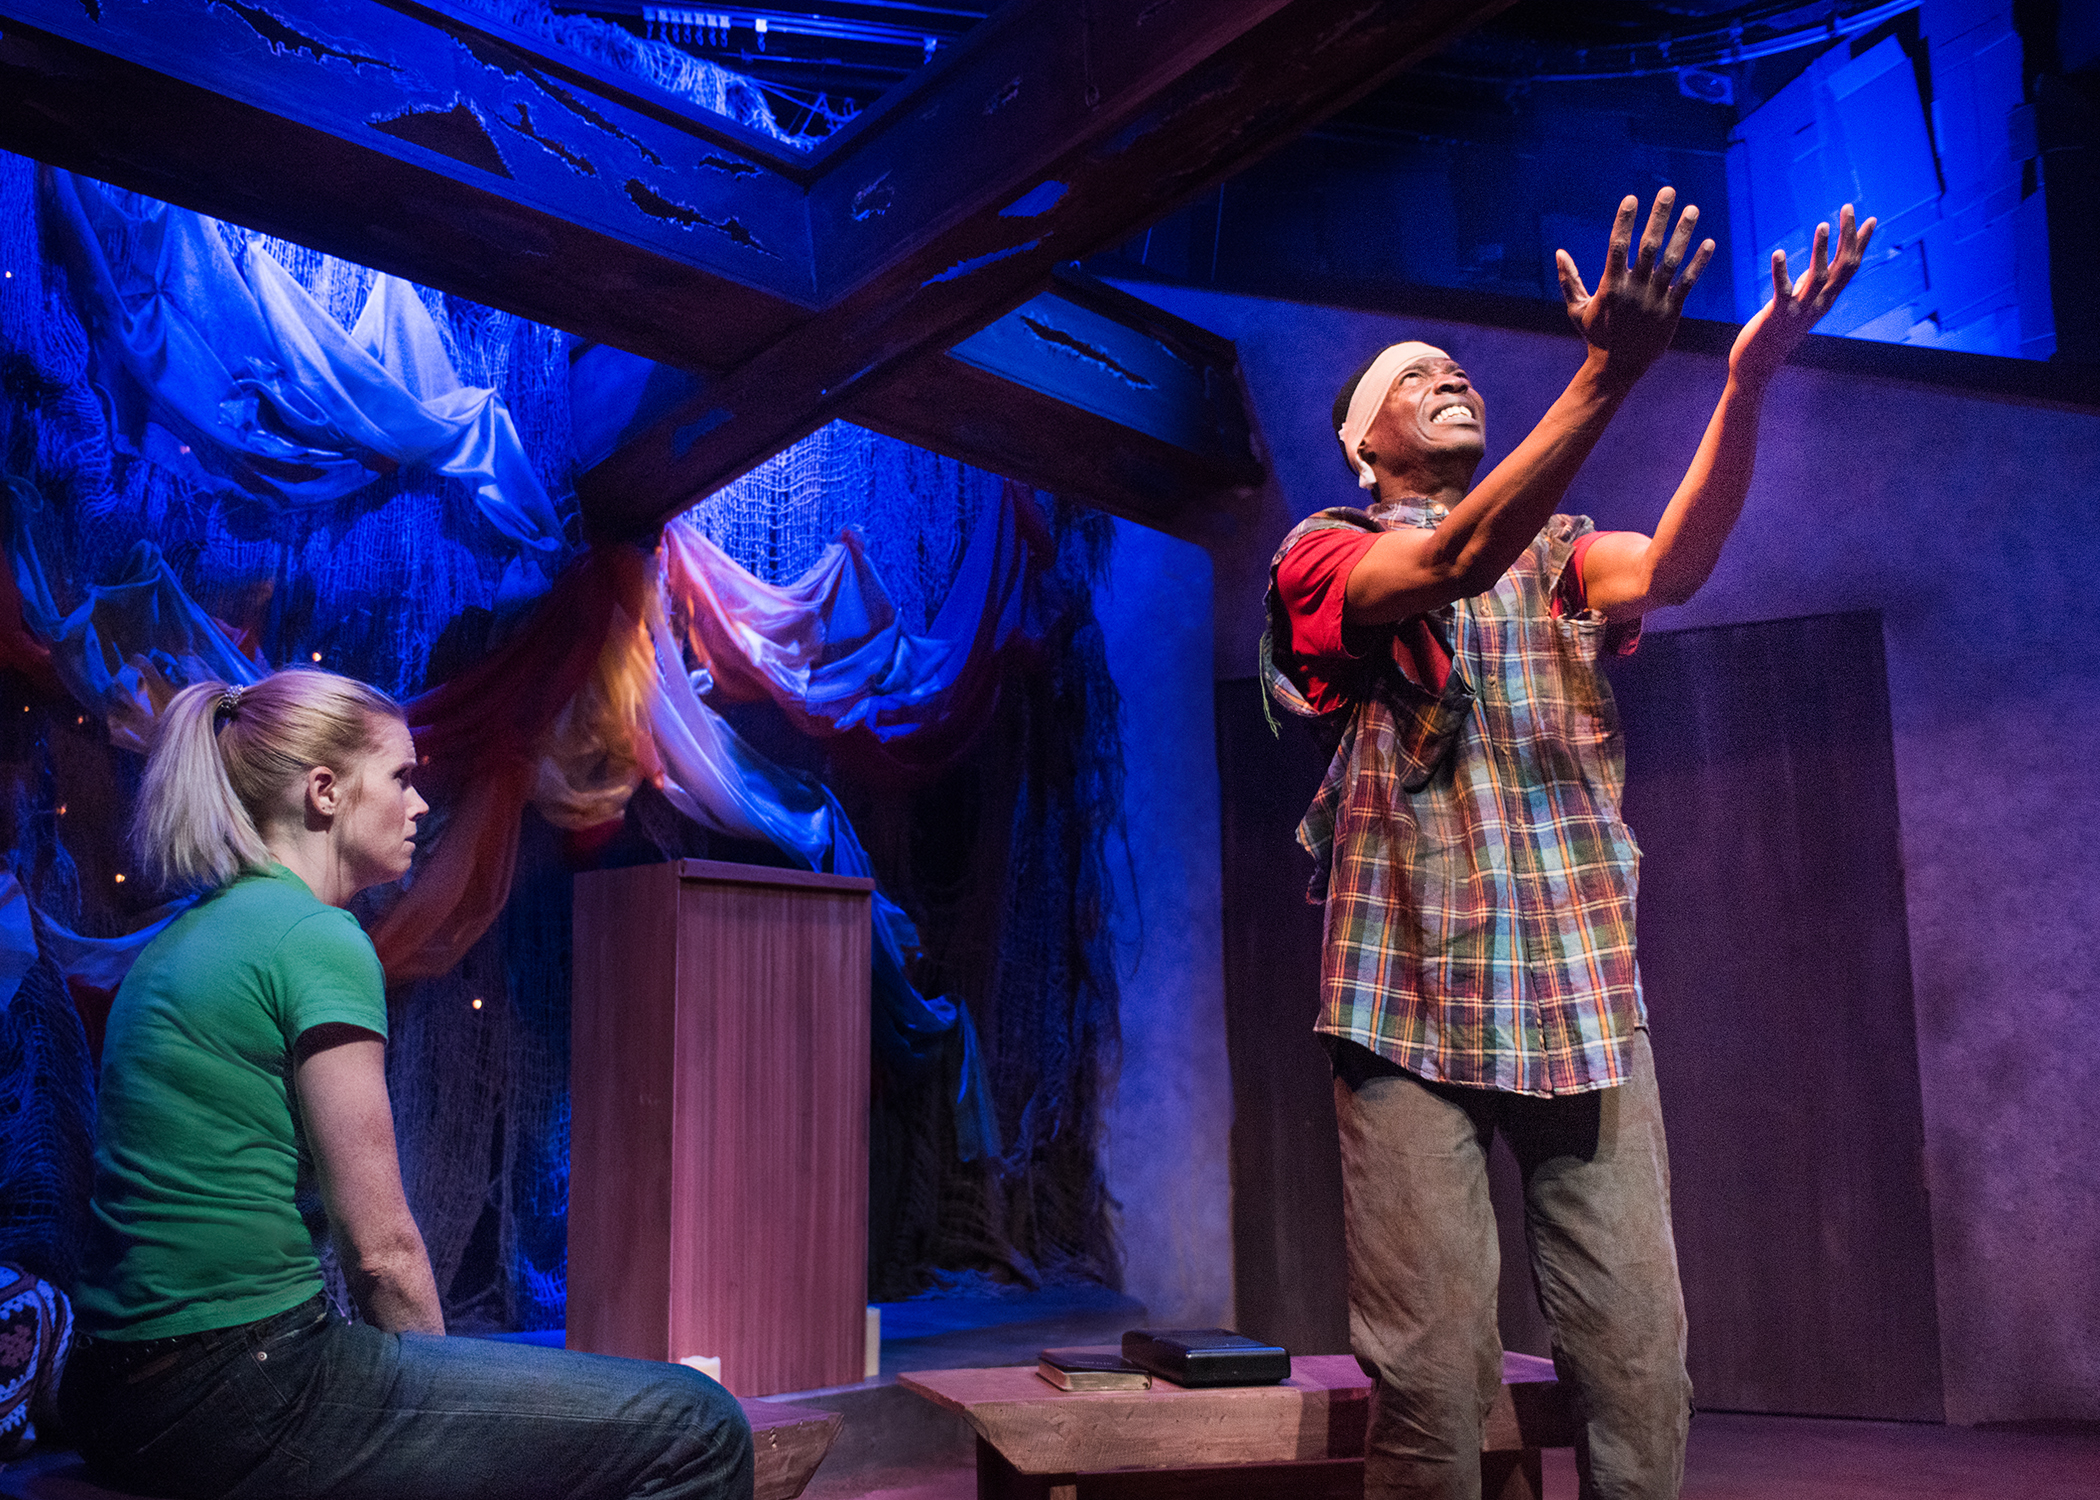 Chris (Megan Timpane) listens as Pika (Howard Johnson) recounts the horrors of war he has seen. Photo by Lois Tema.